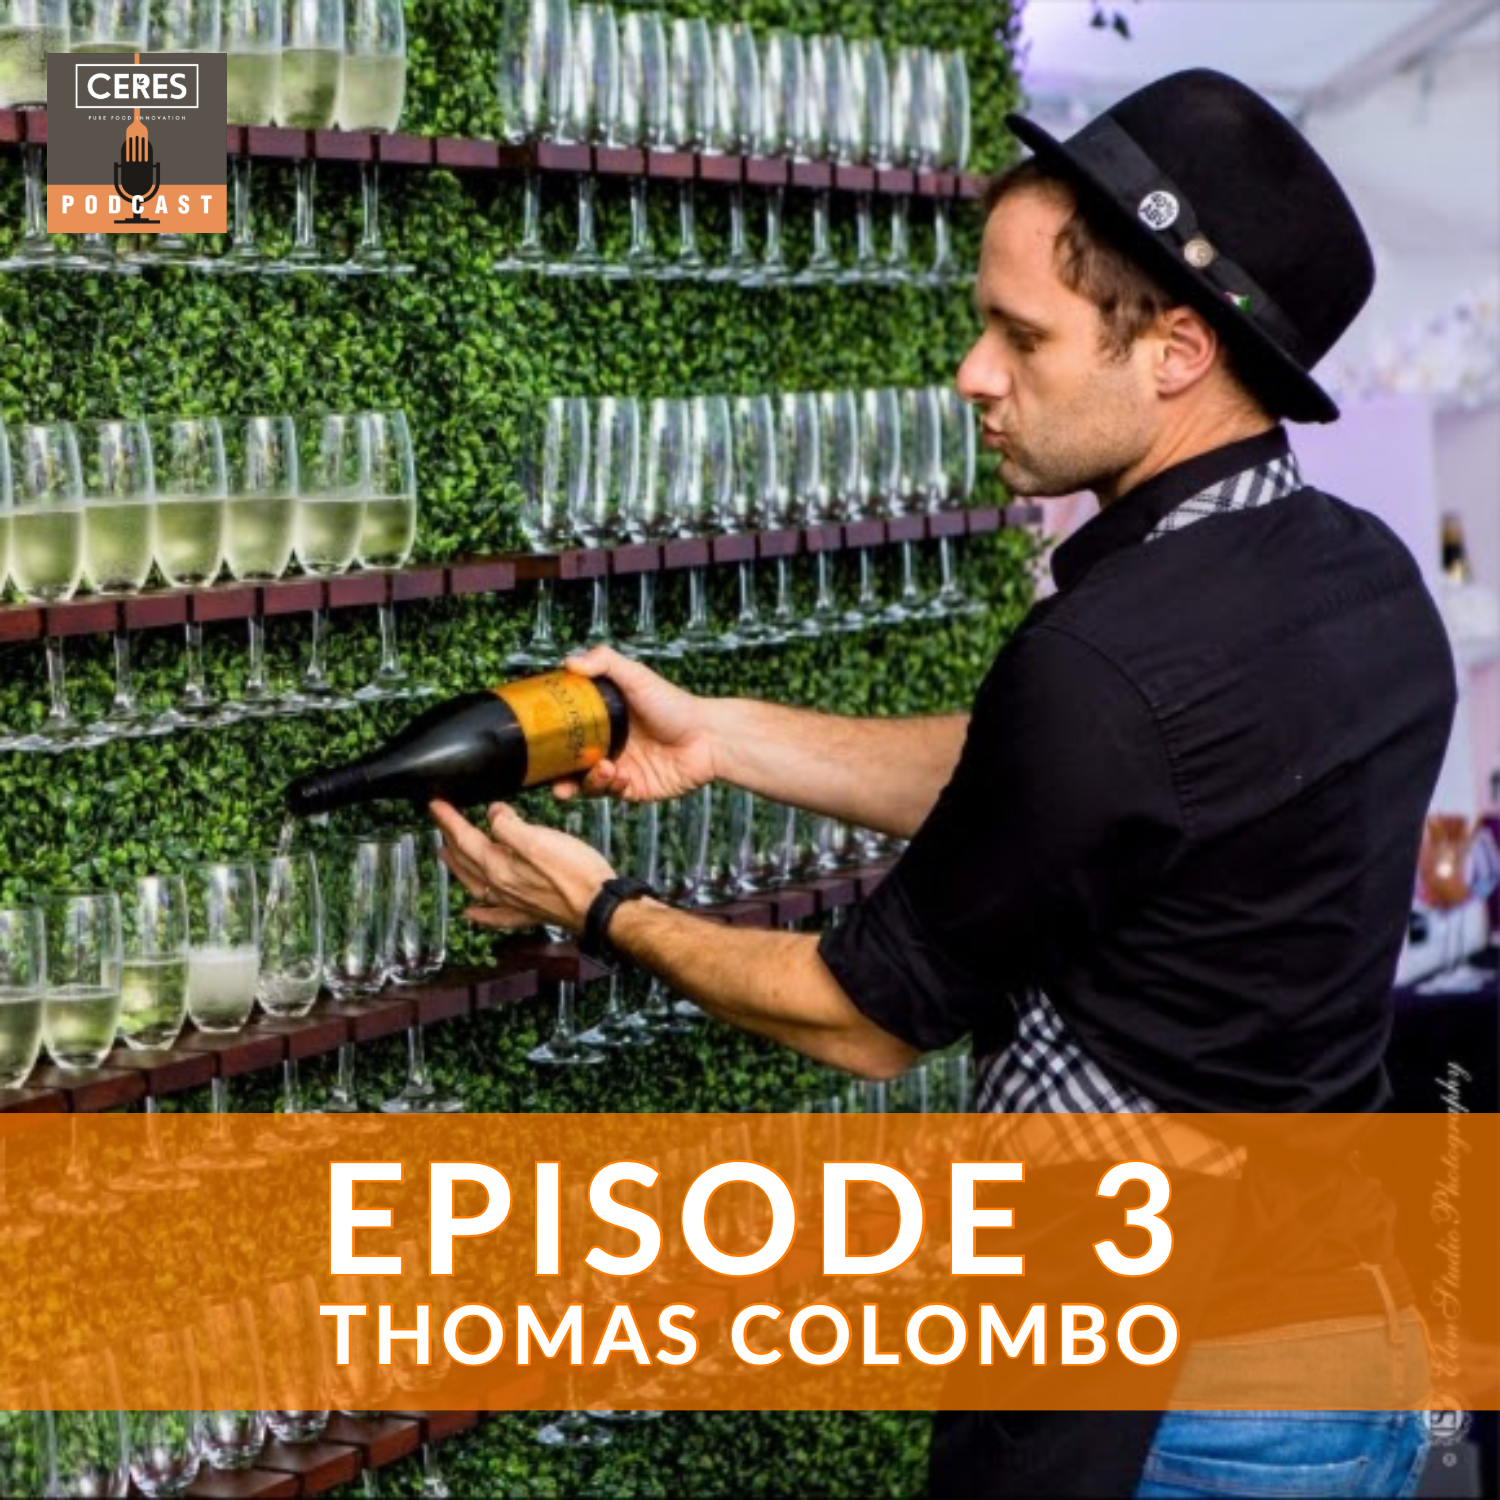 episode 3 cover of Thomas Colombo